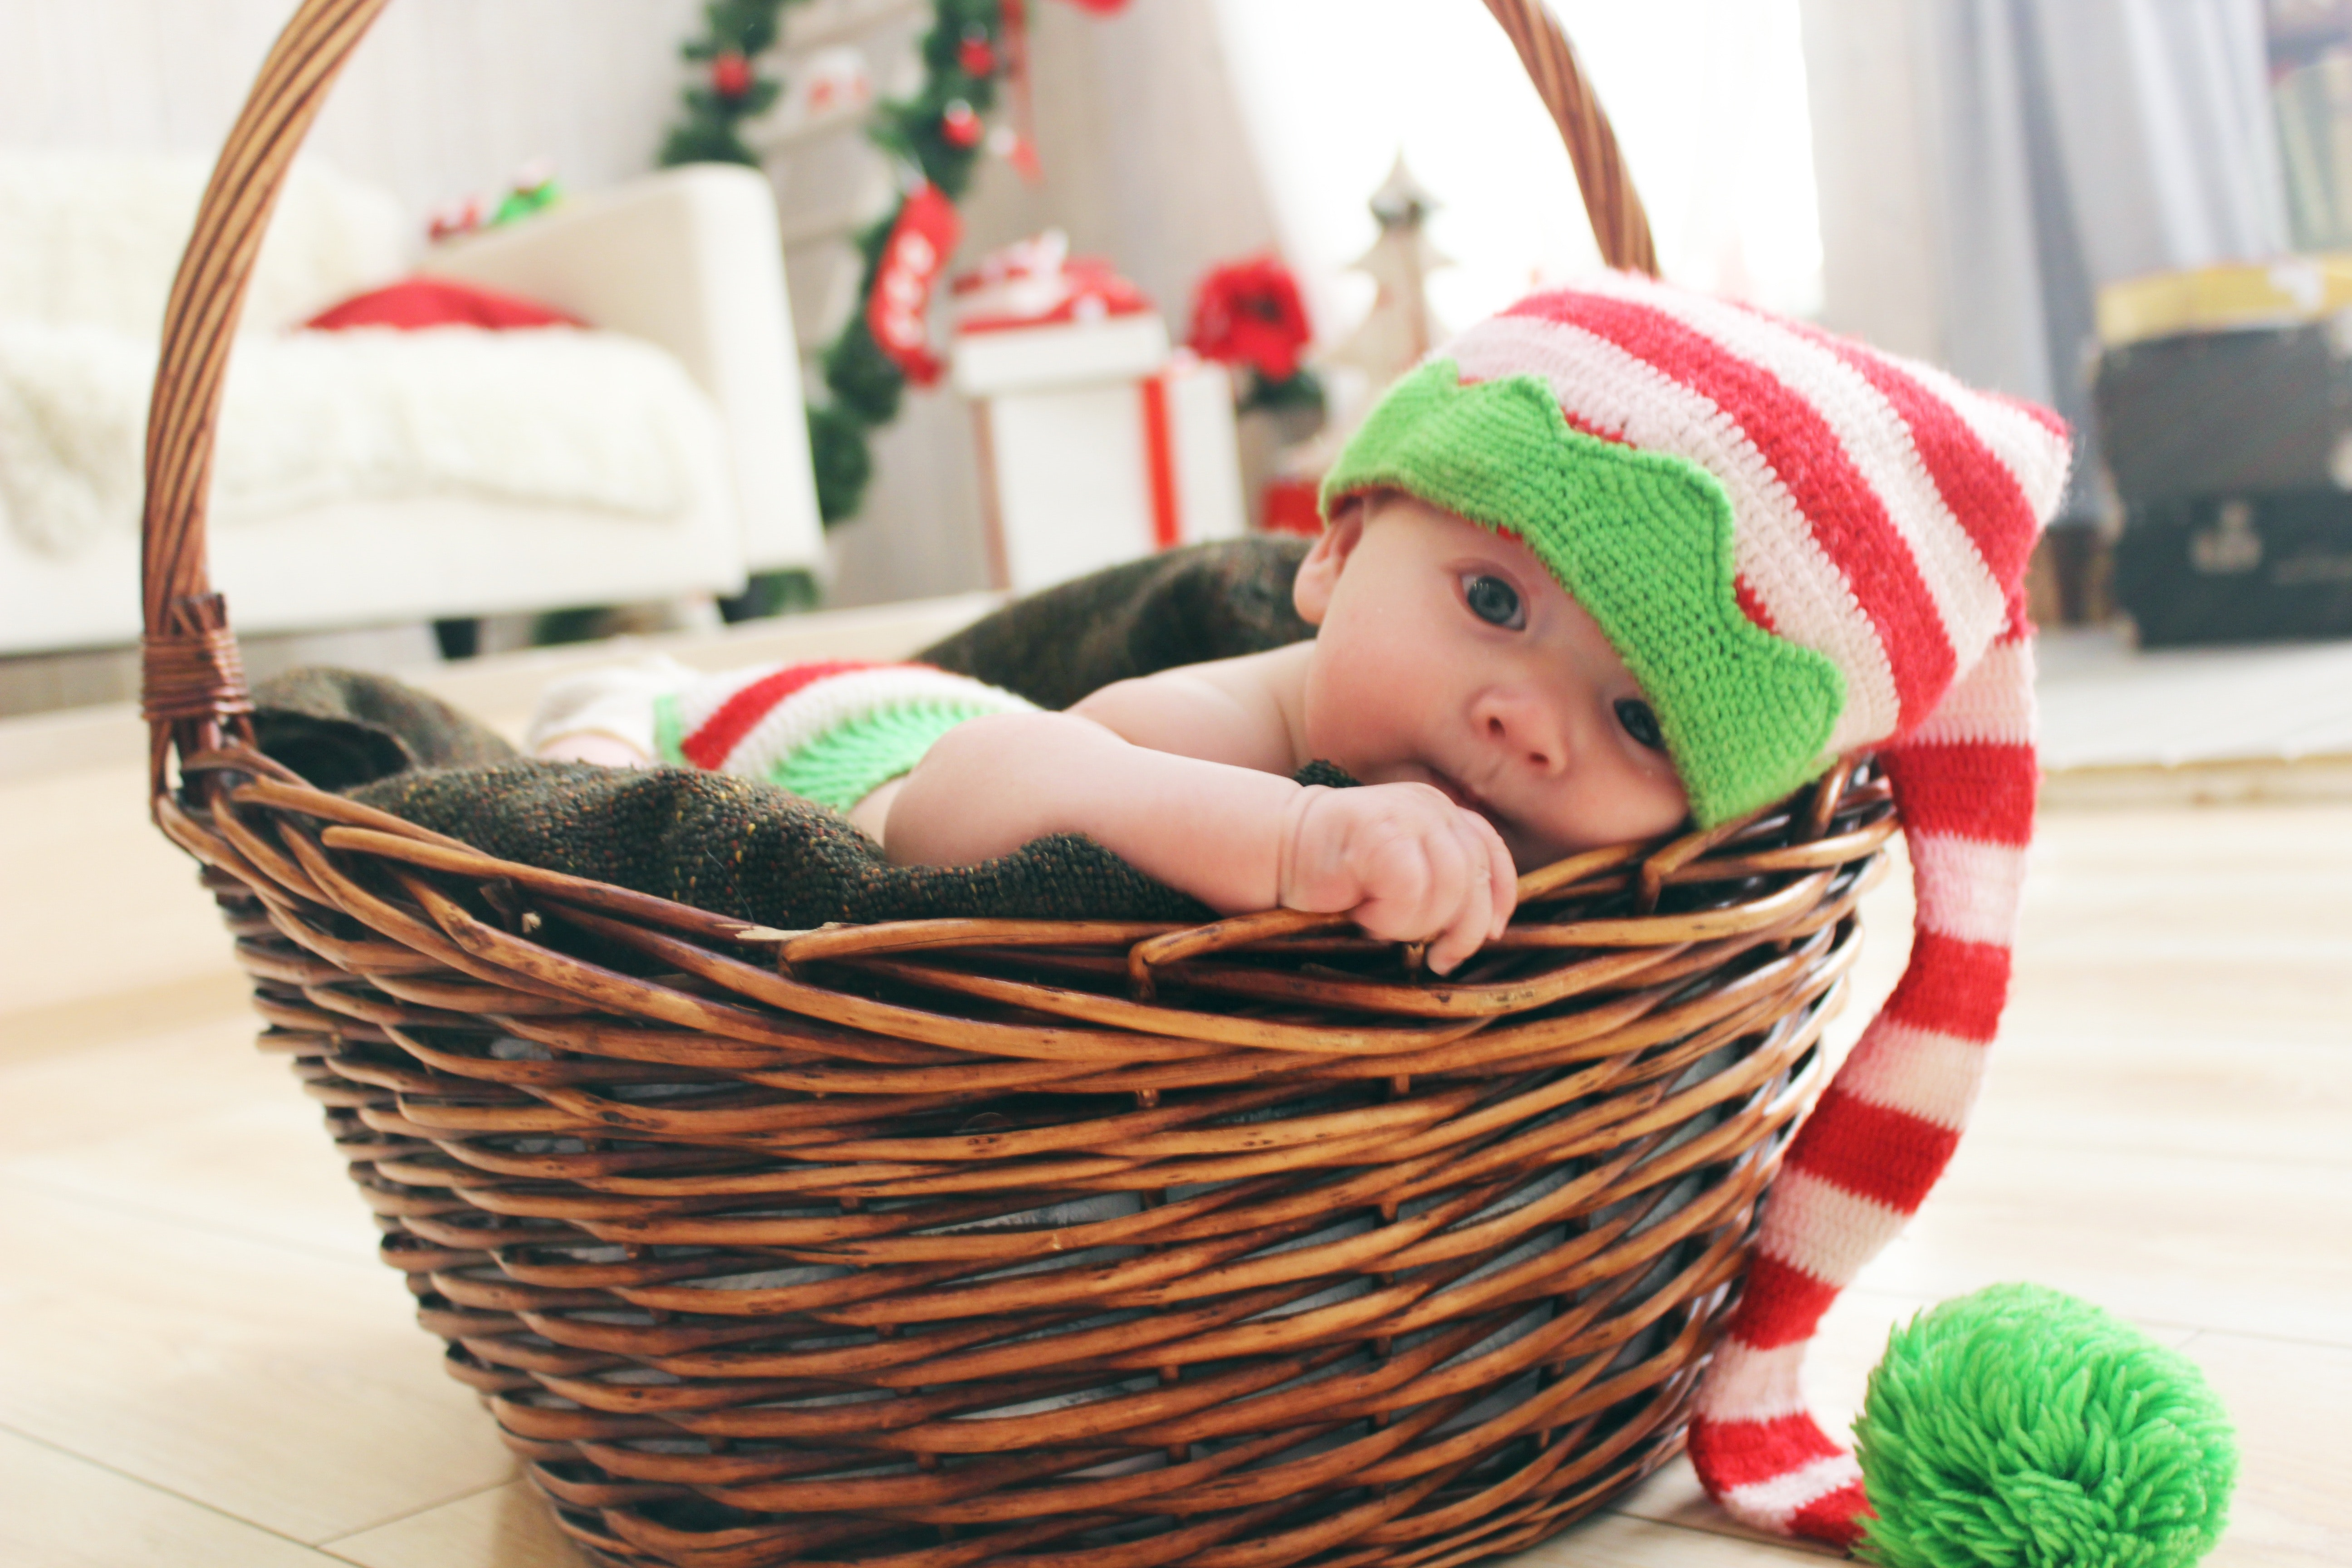 adorable-baby-basket-265981